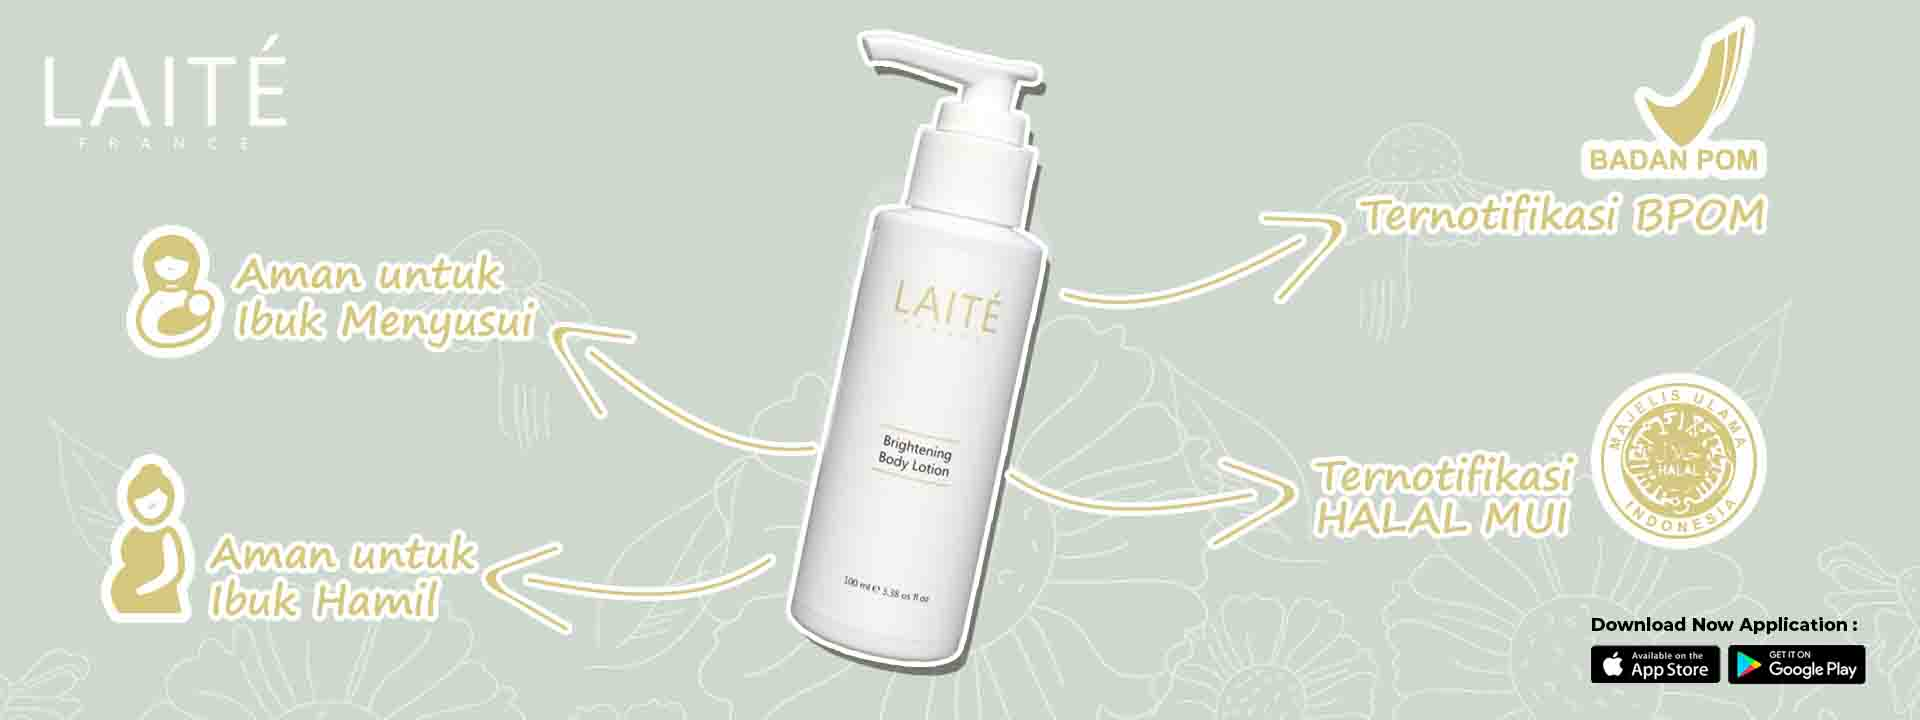 All Laite products are certified